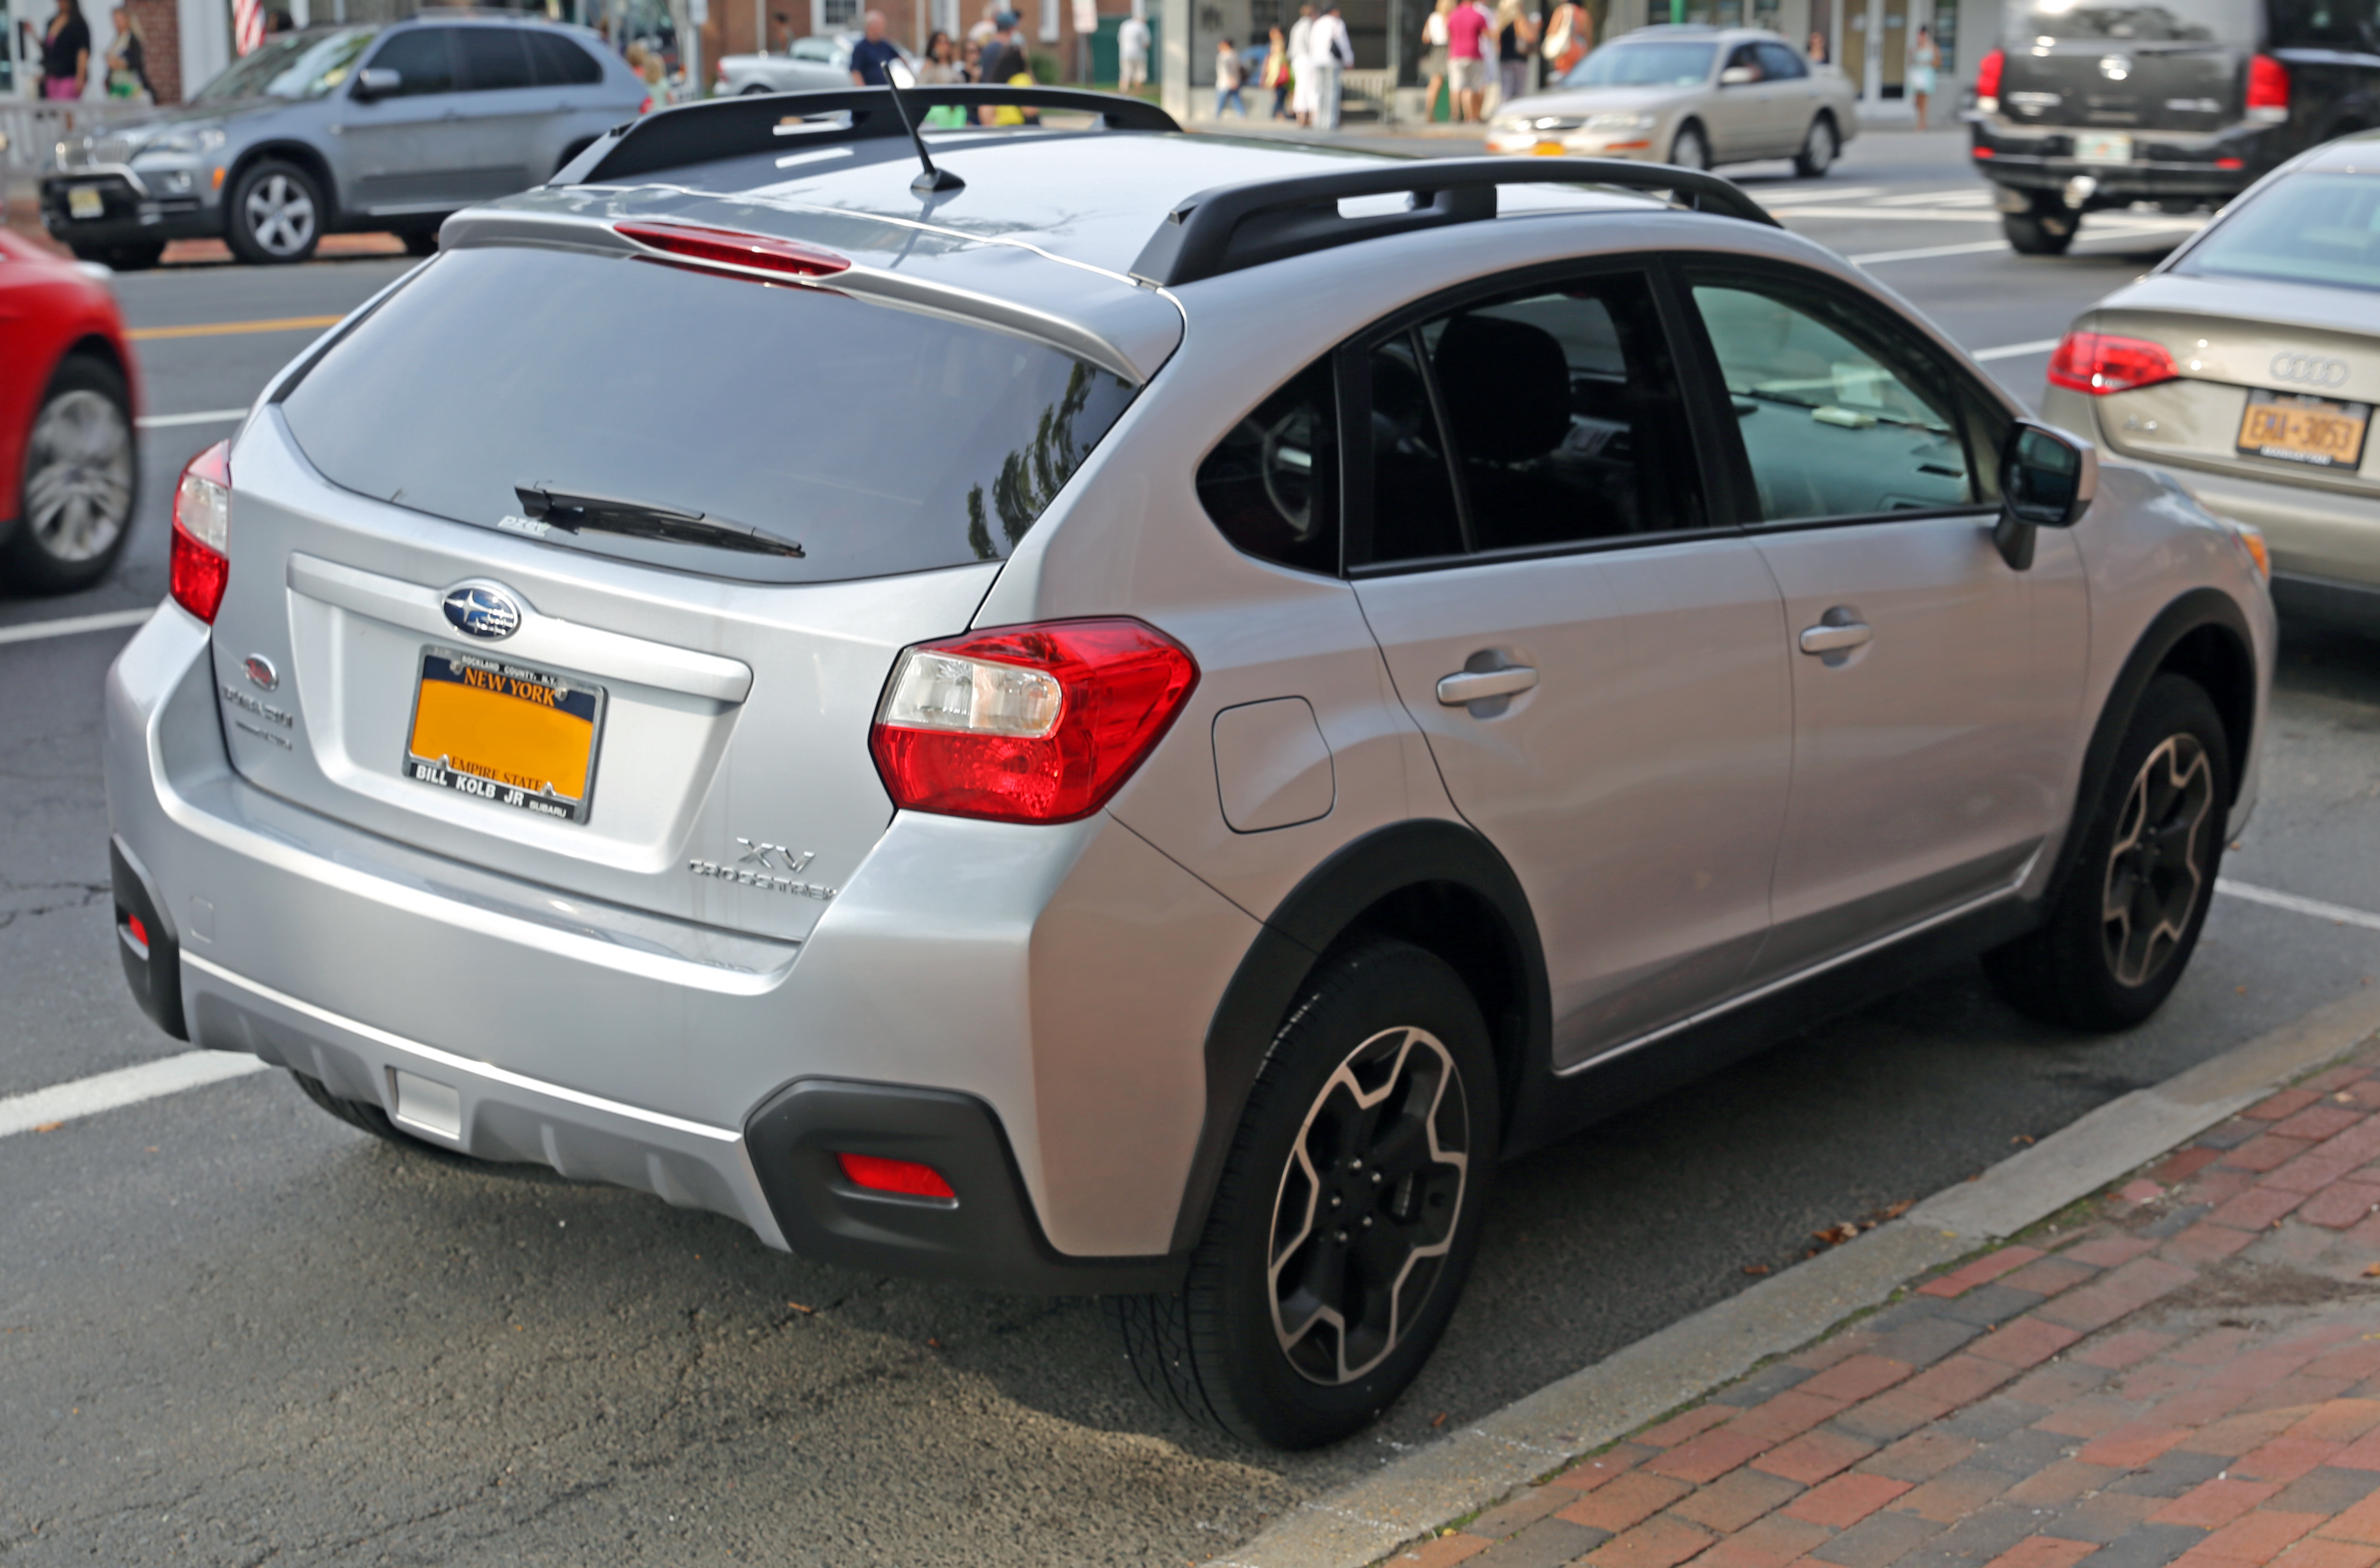 file:2013 subaru xv crosstrek, rear view - wikimedia commons